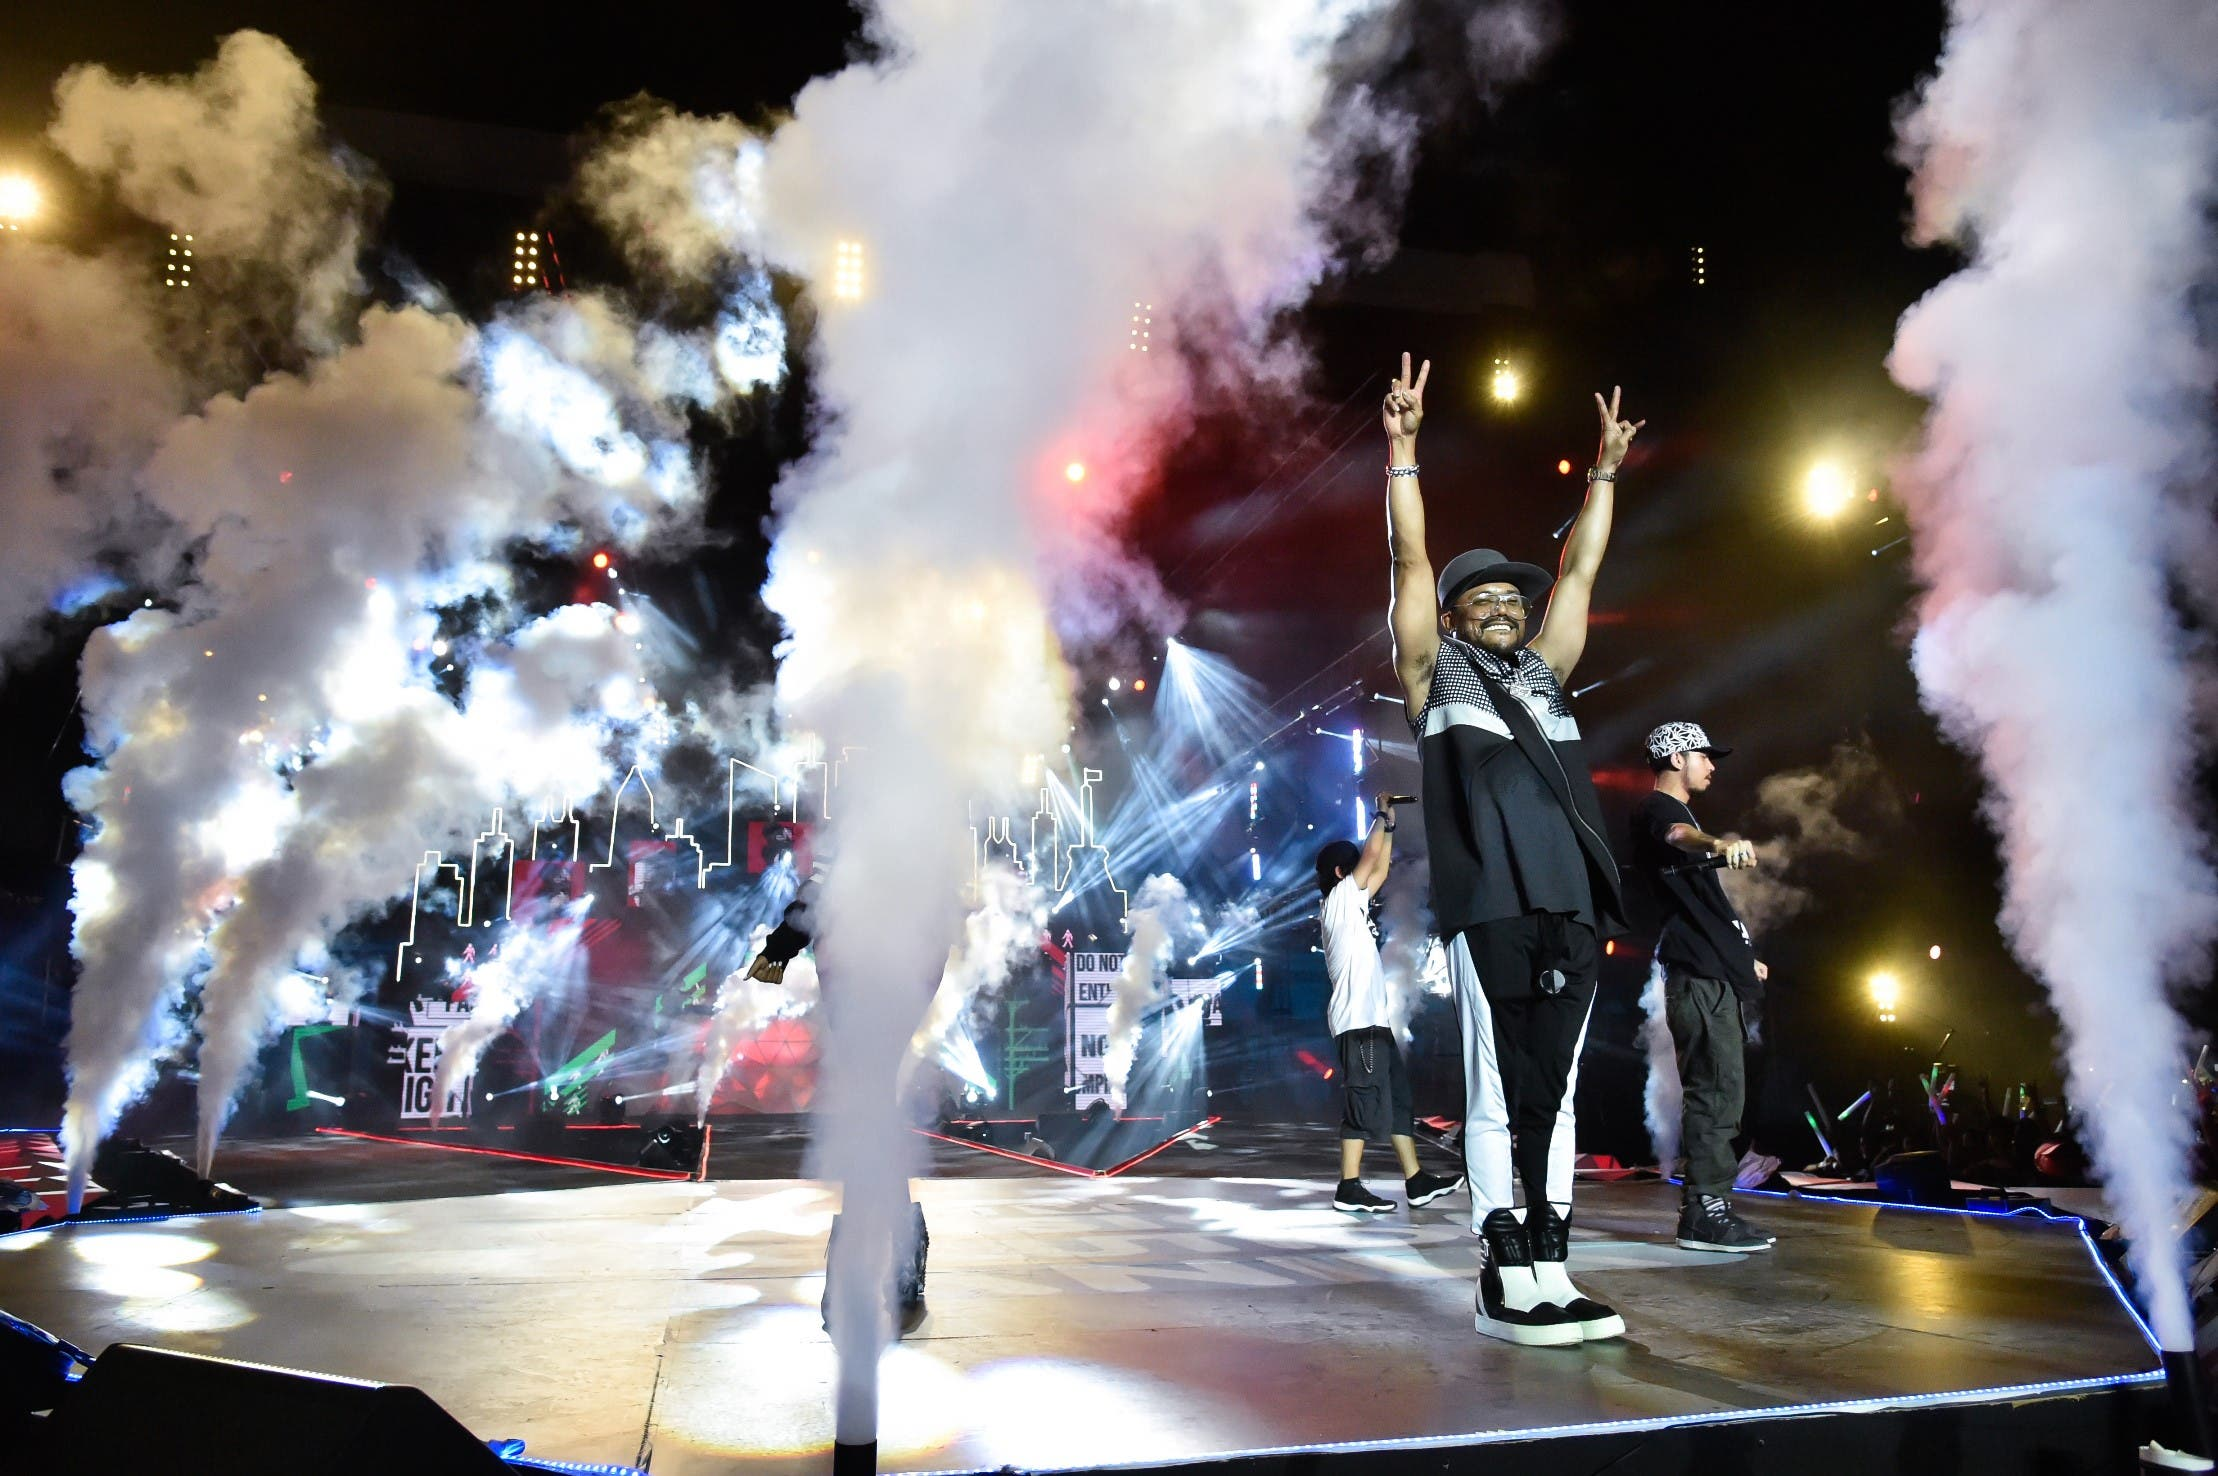 Apl.de.ap performing at MTV Music Evolution 2015 on 17 May Pic 13 (Credit - MTV Asia & Kristian Dowling)